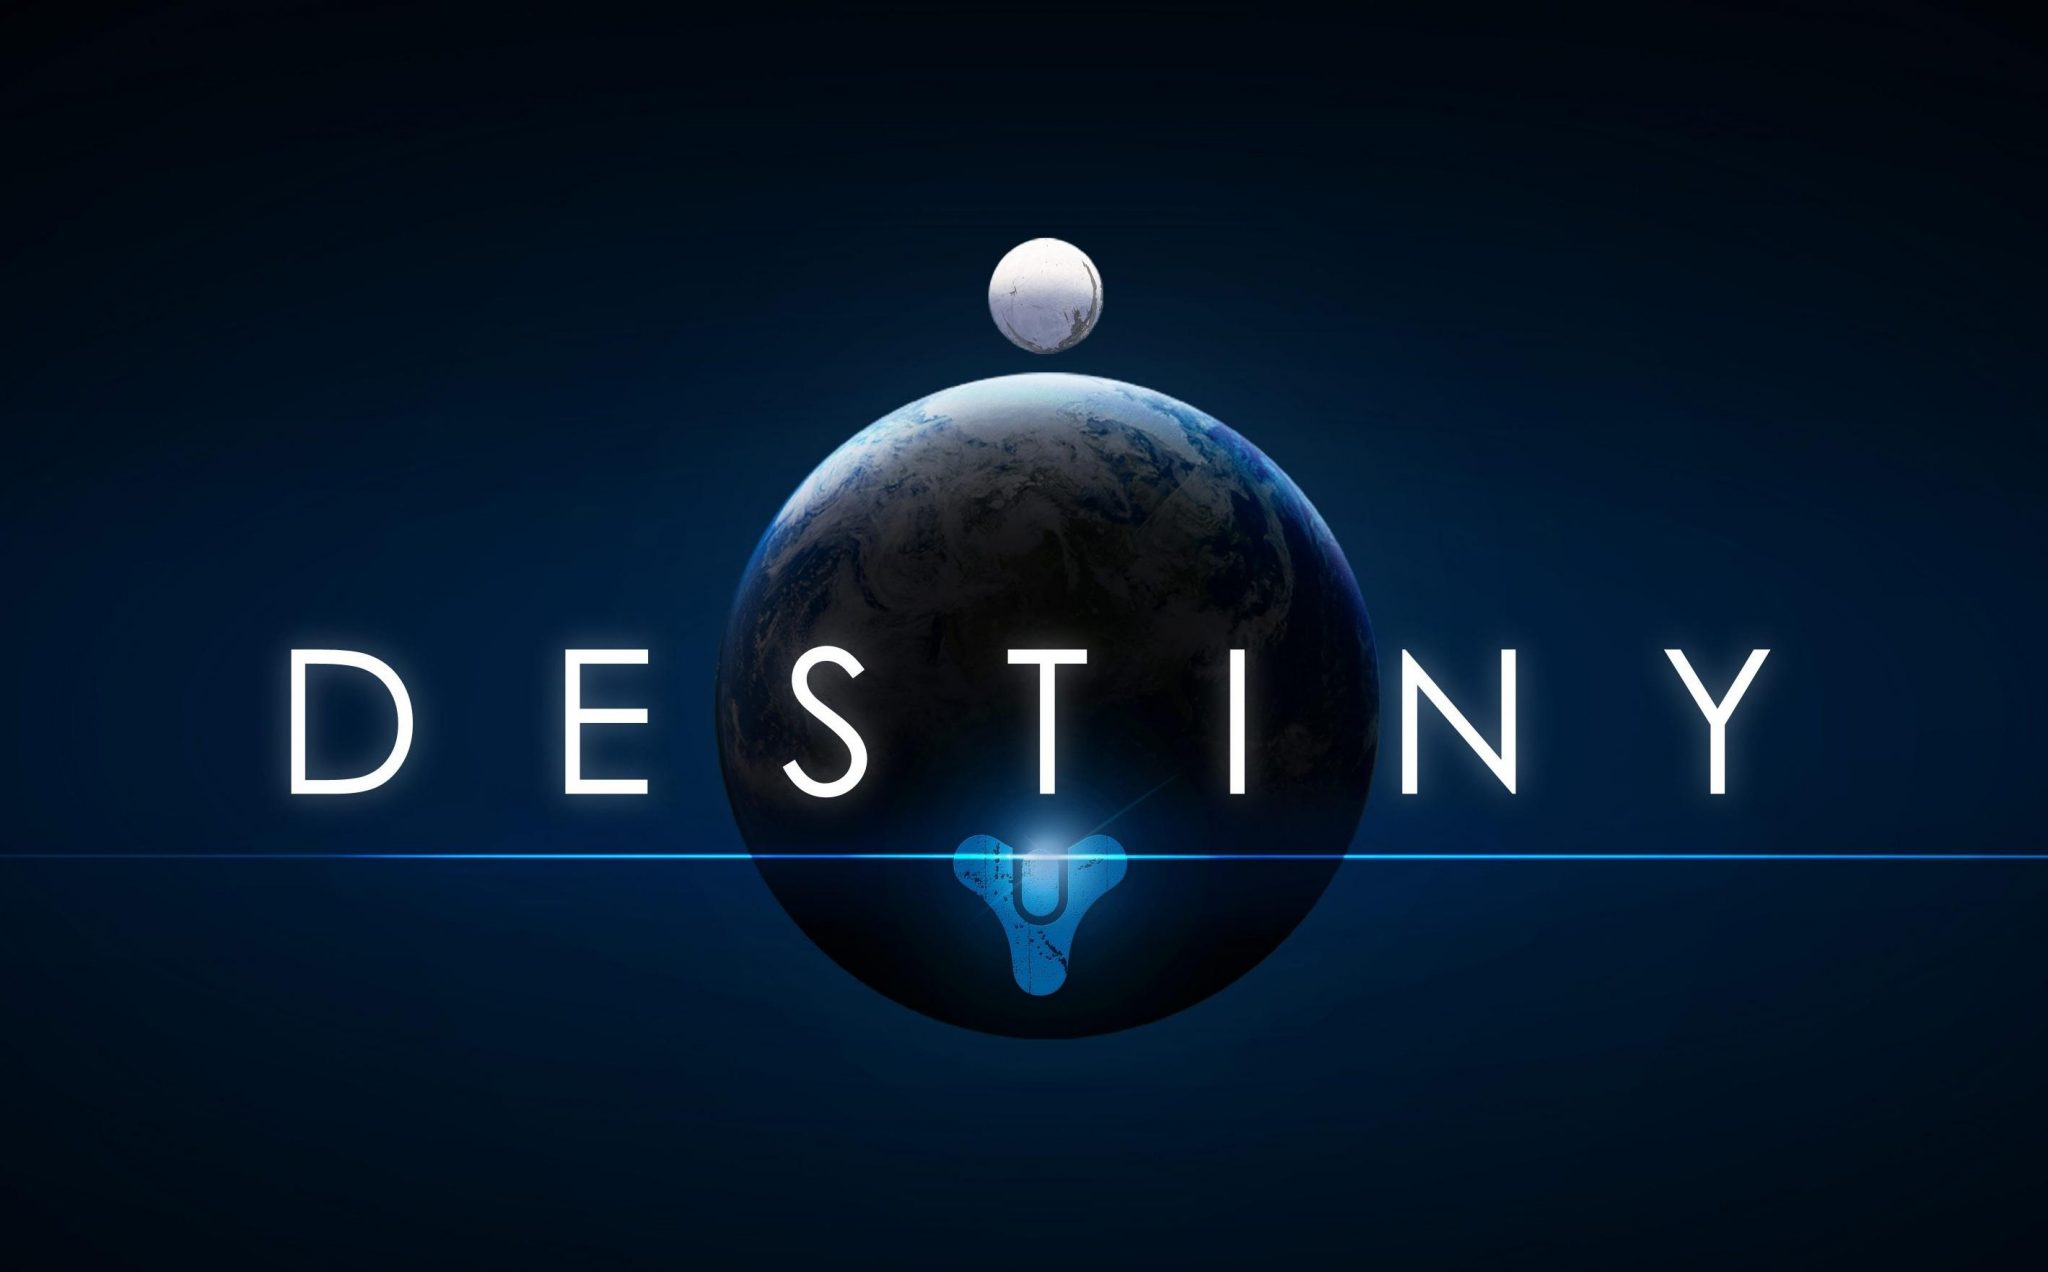 Destiny feature image